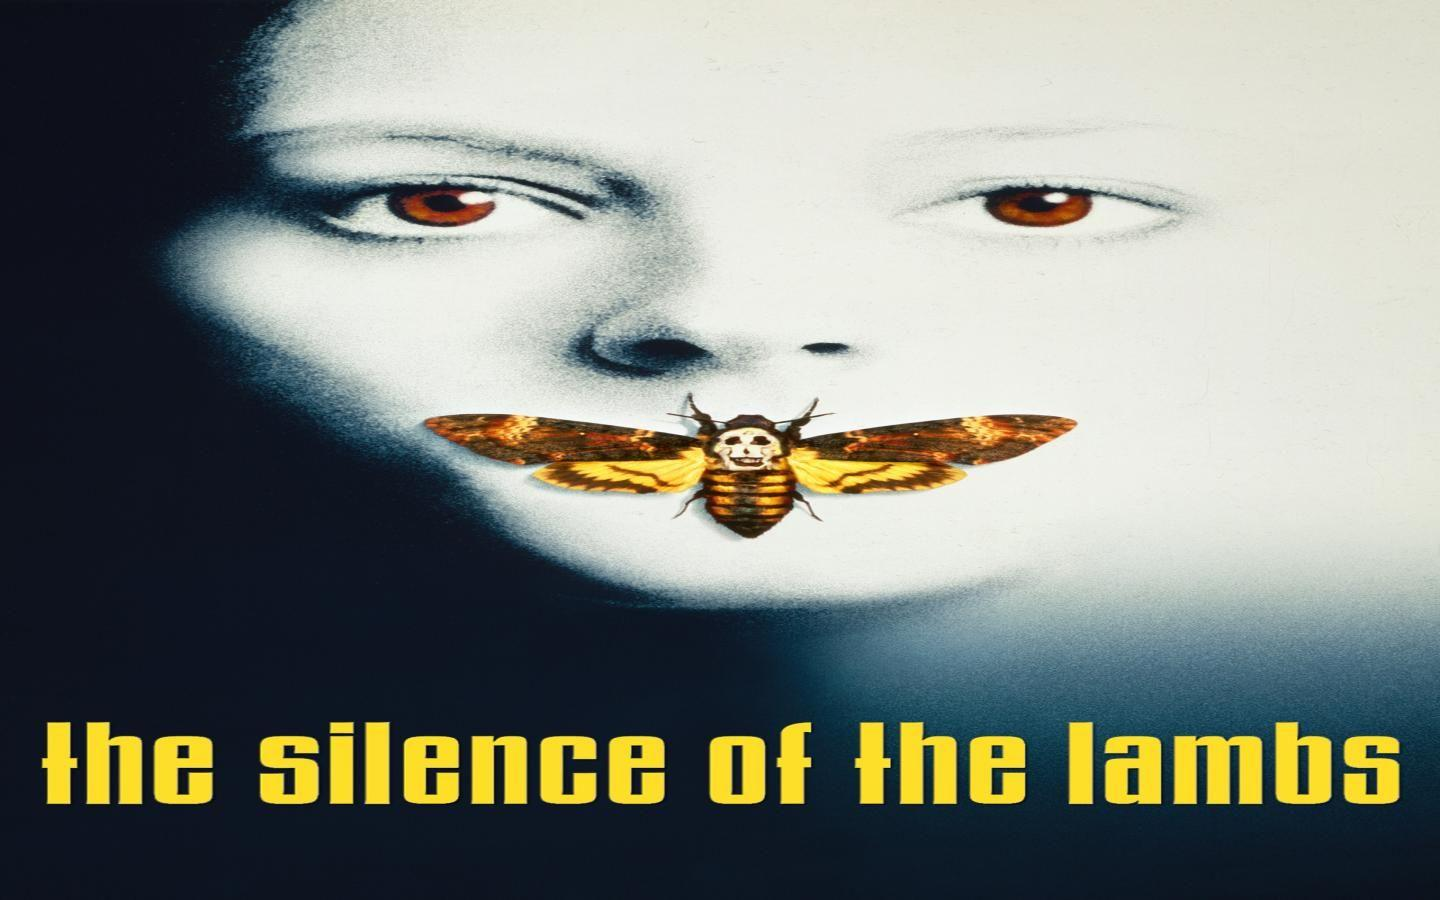 Silence Of The Lambs Wallpapers-C1O53Y4.jpg | Wall2Born.com